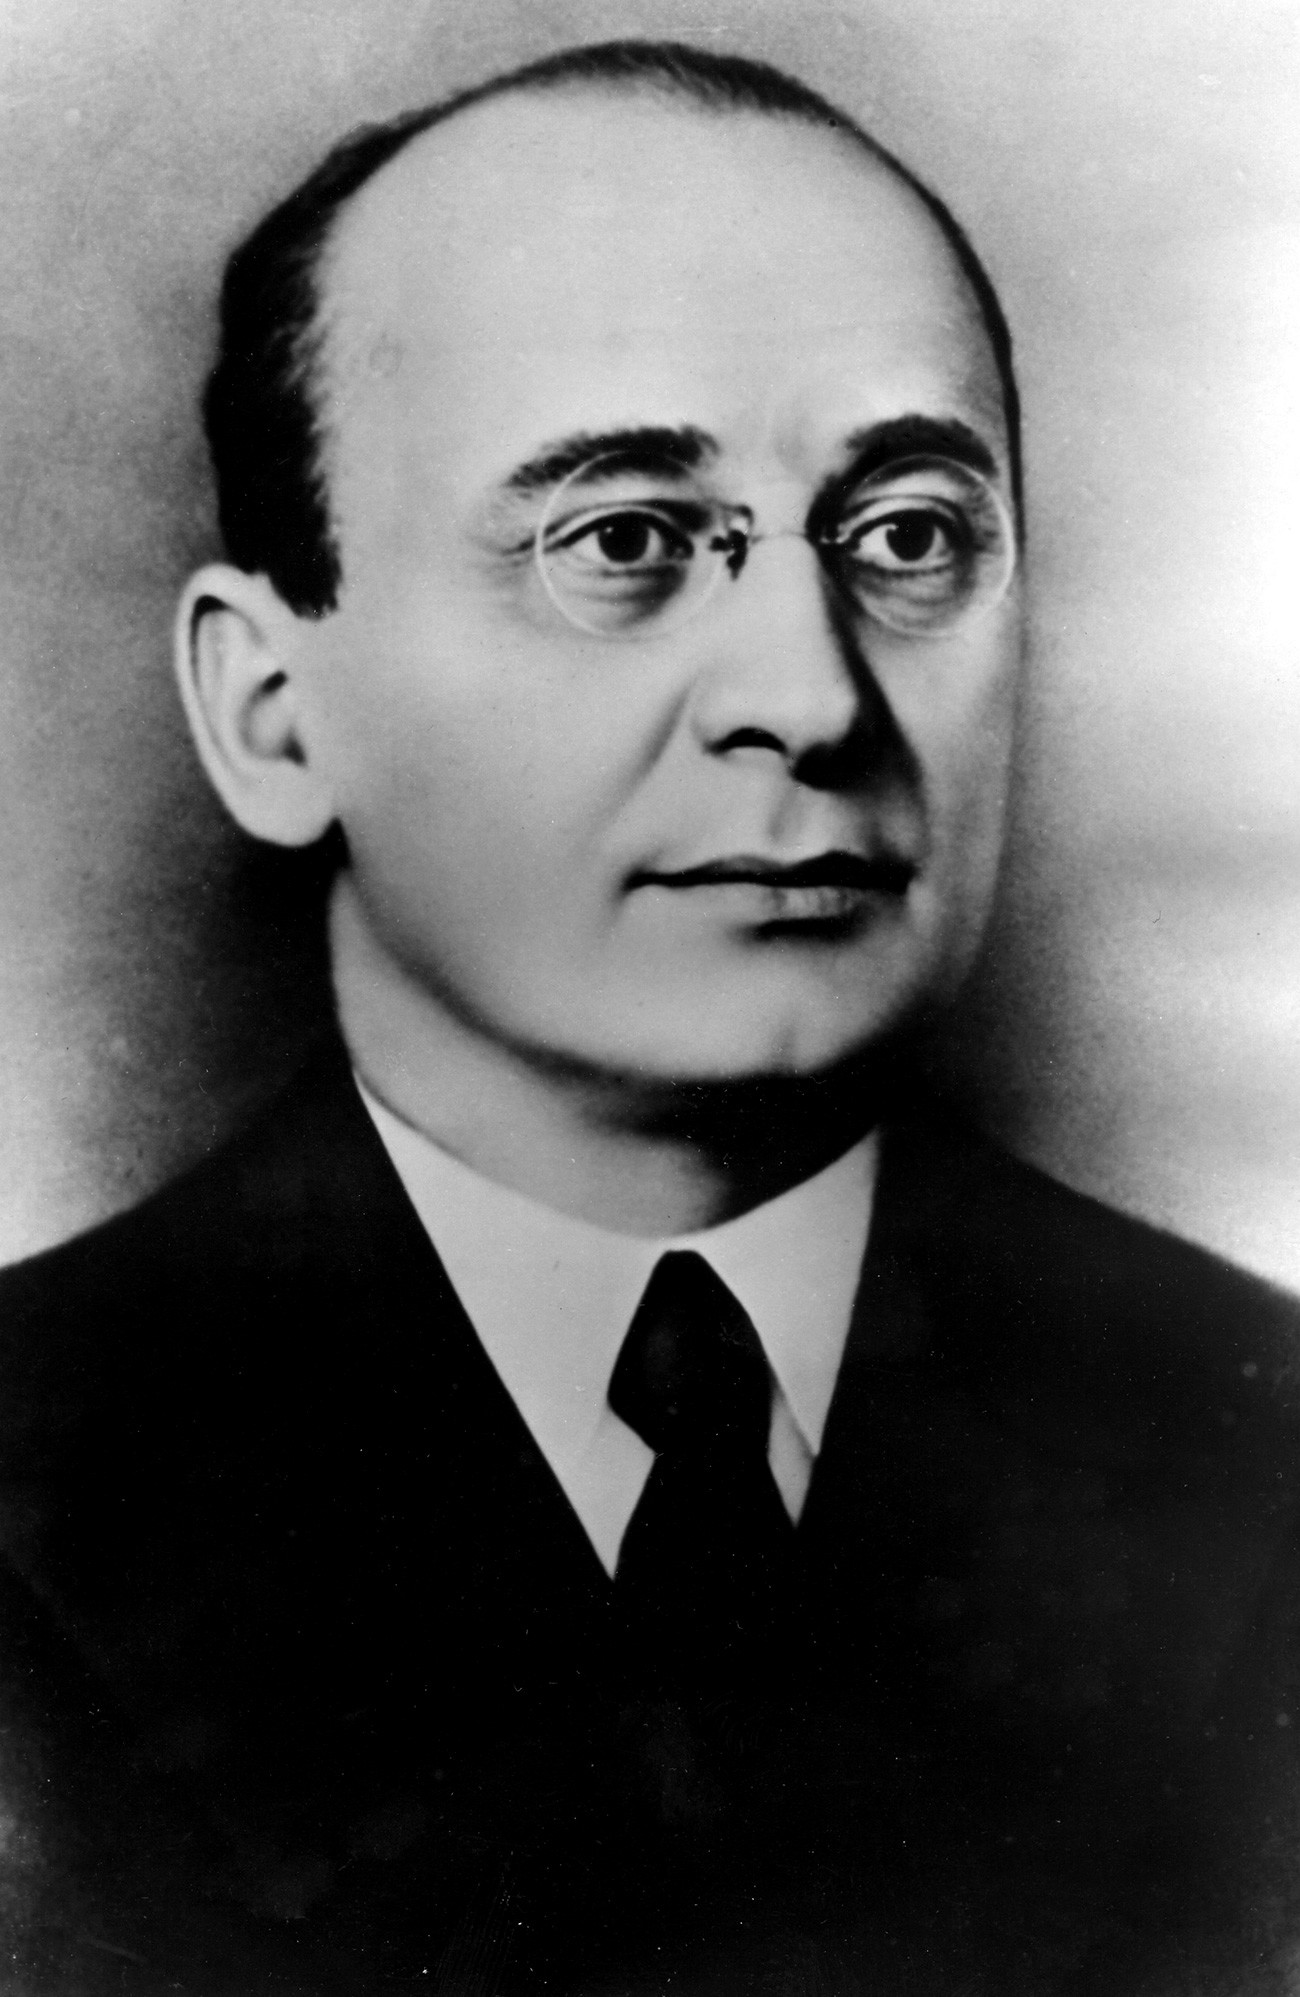 Lawrentij Beria